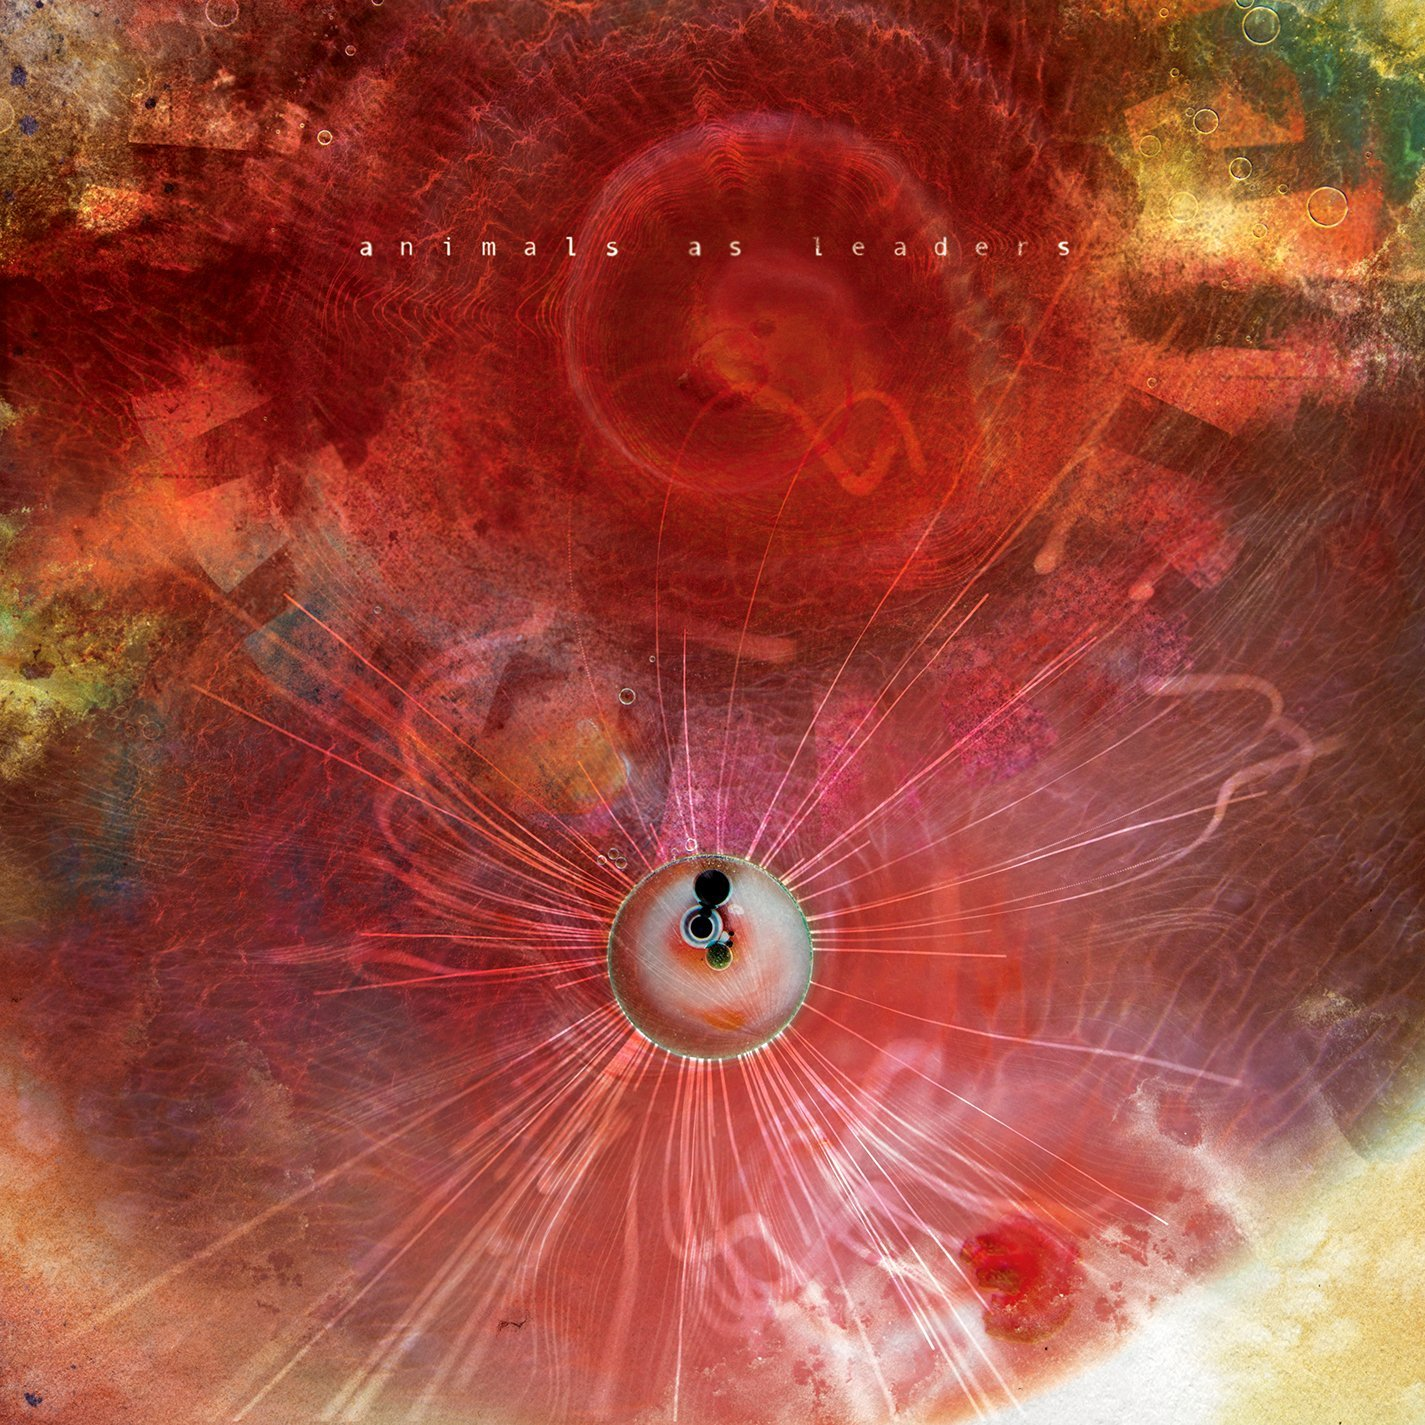 10. Animals As Leaders THE JOY OF MOTION